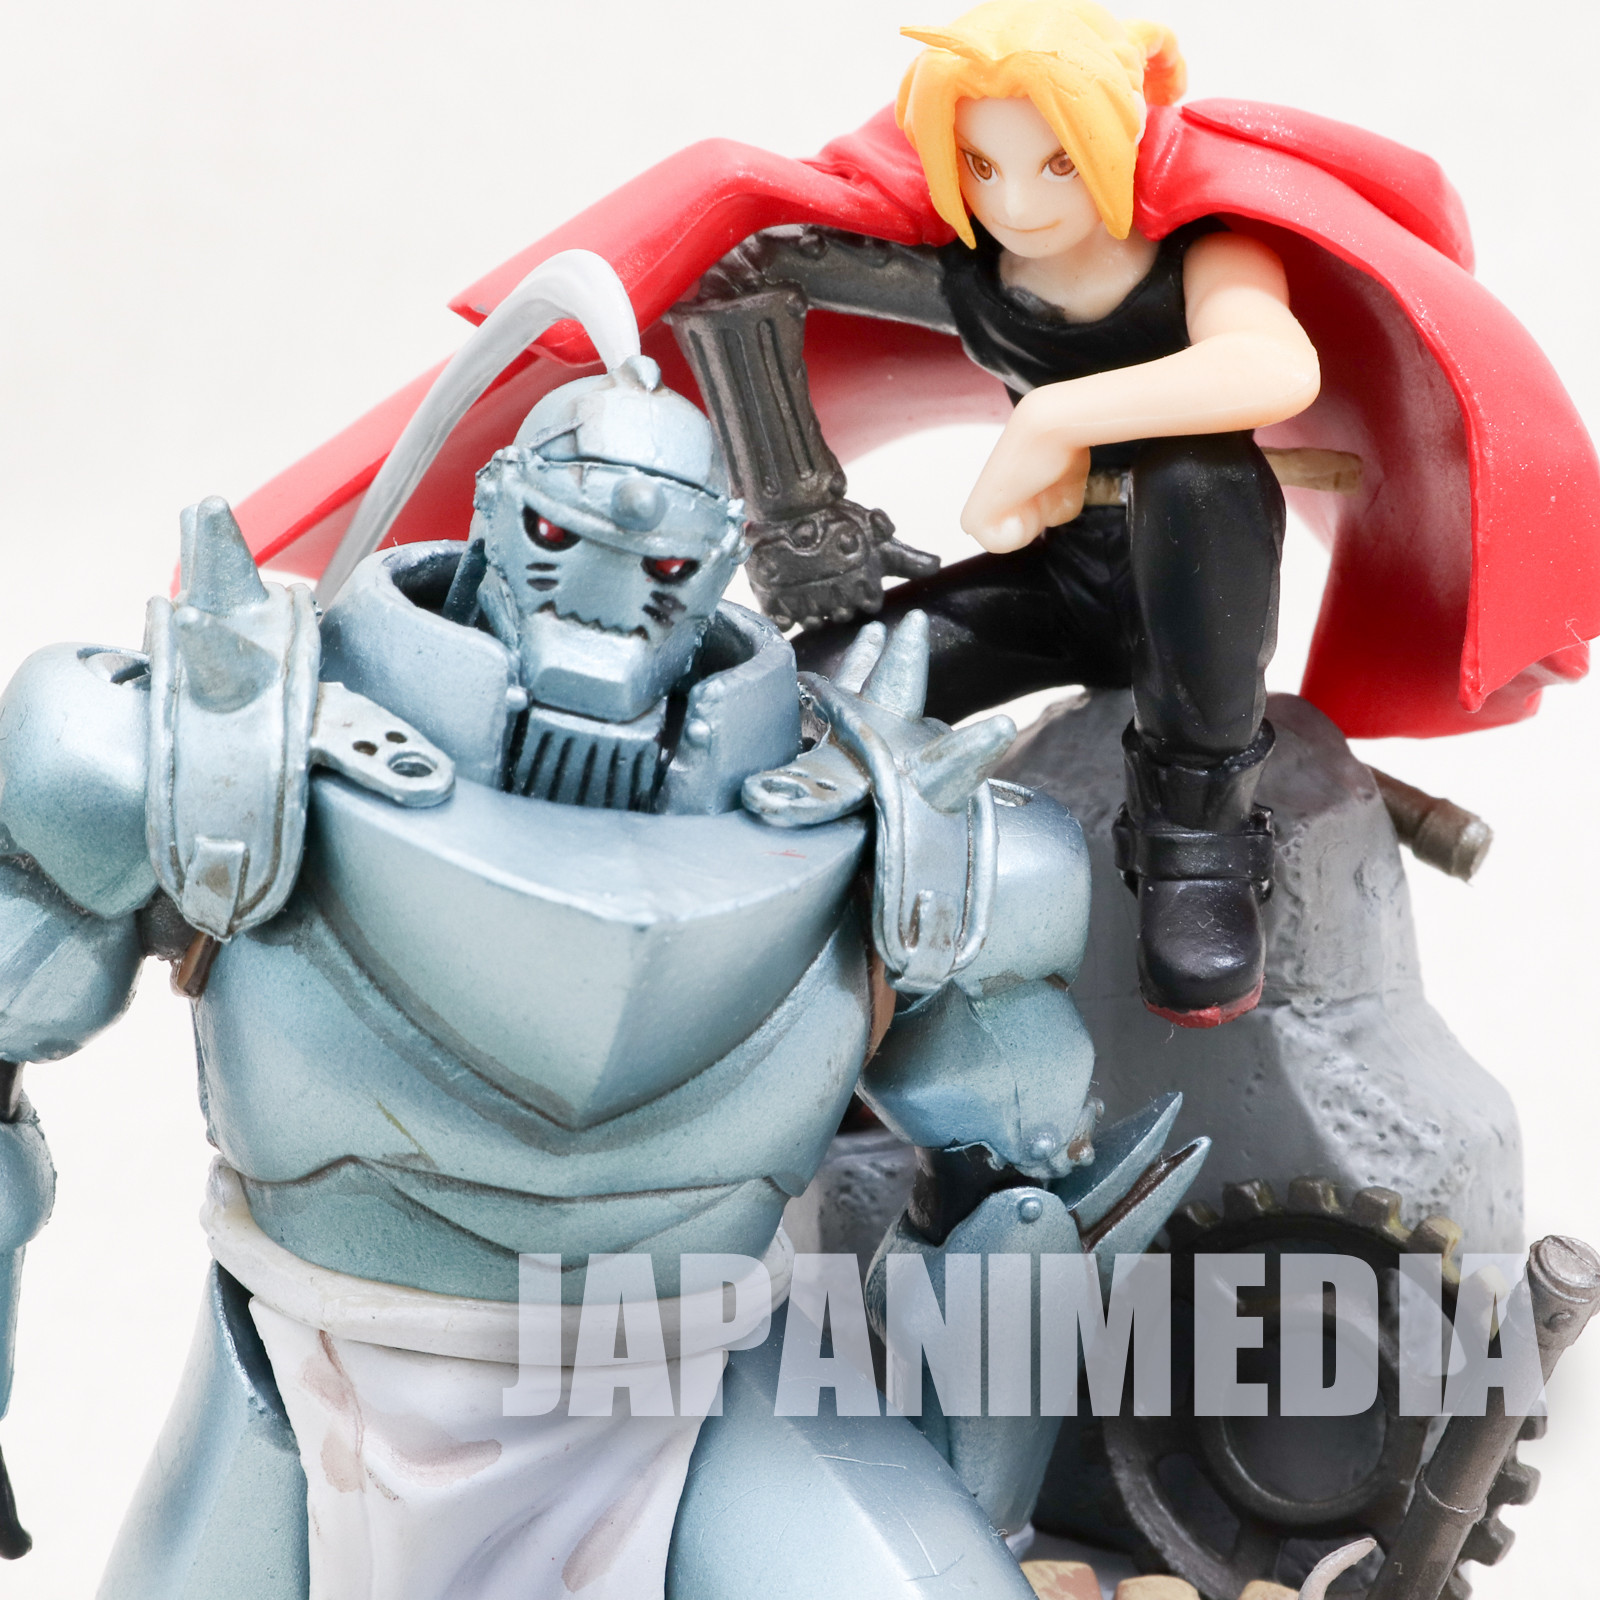 Fullmetal Alchemist Figure Red Edward Elric and Alphonse JAPAN ANIME 2